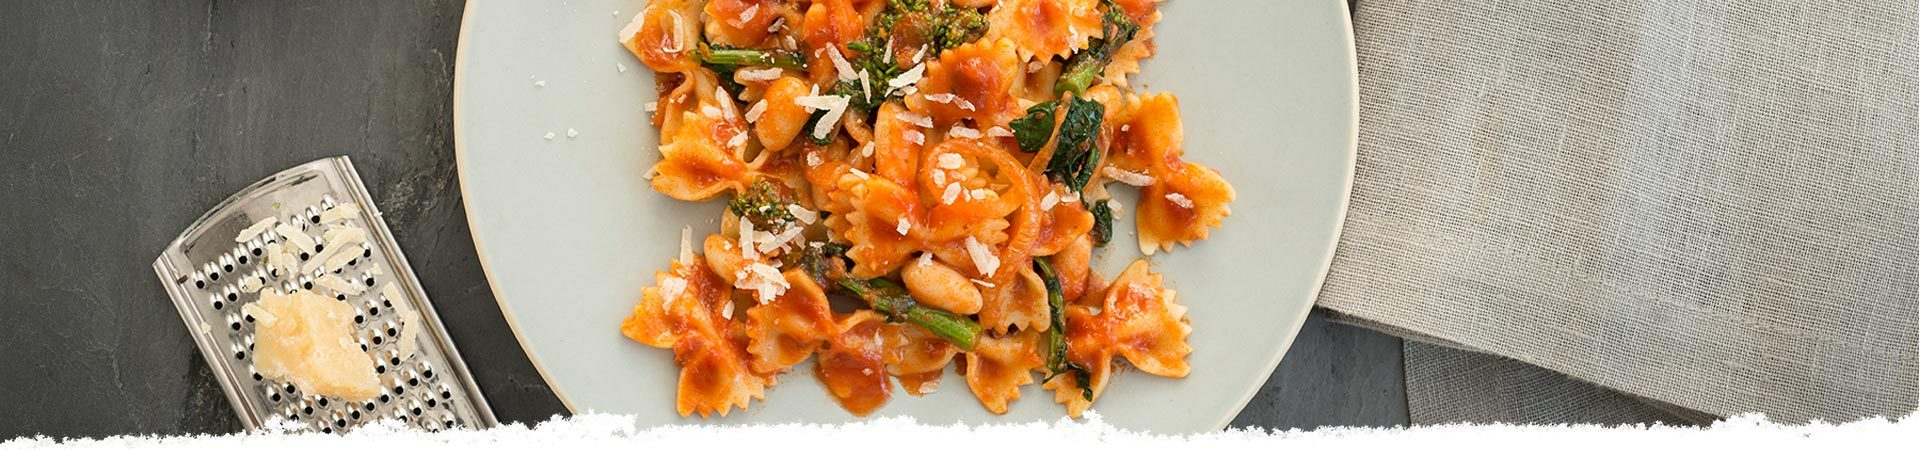 Bow Ties with Broccoli Rabe and Cannellini Beans